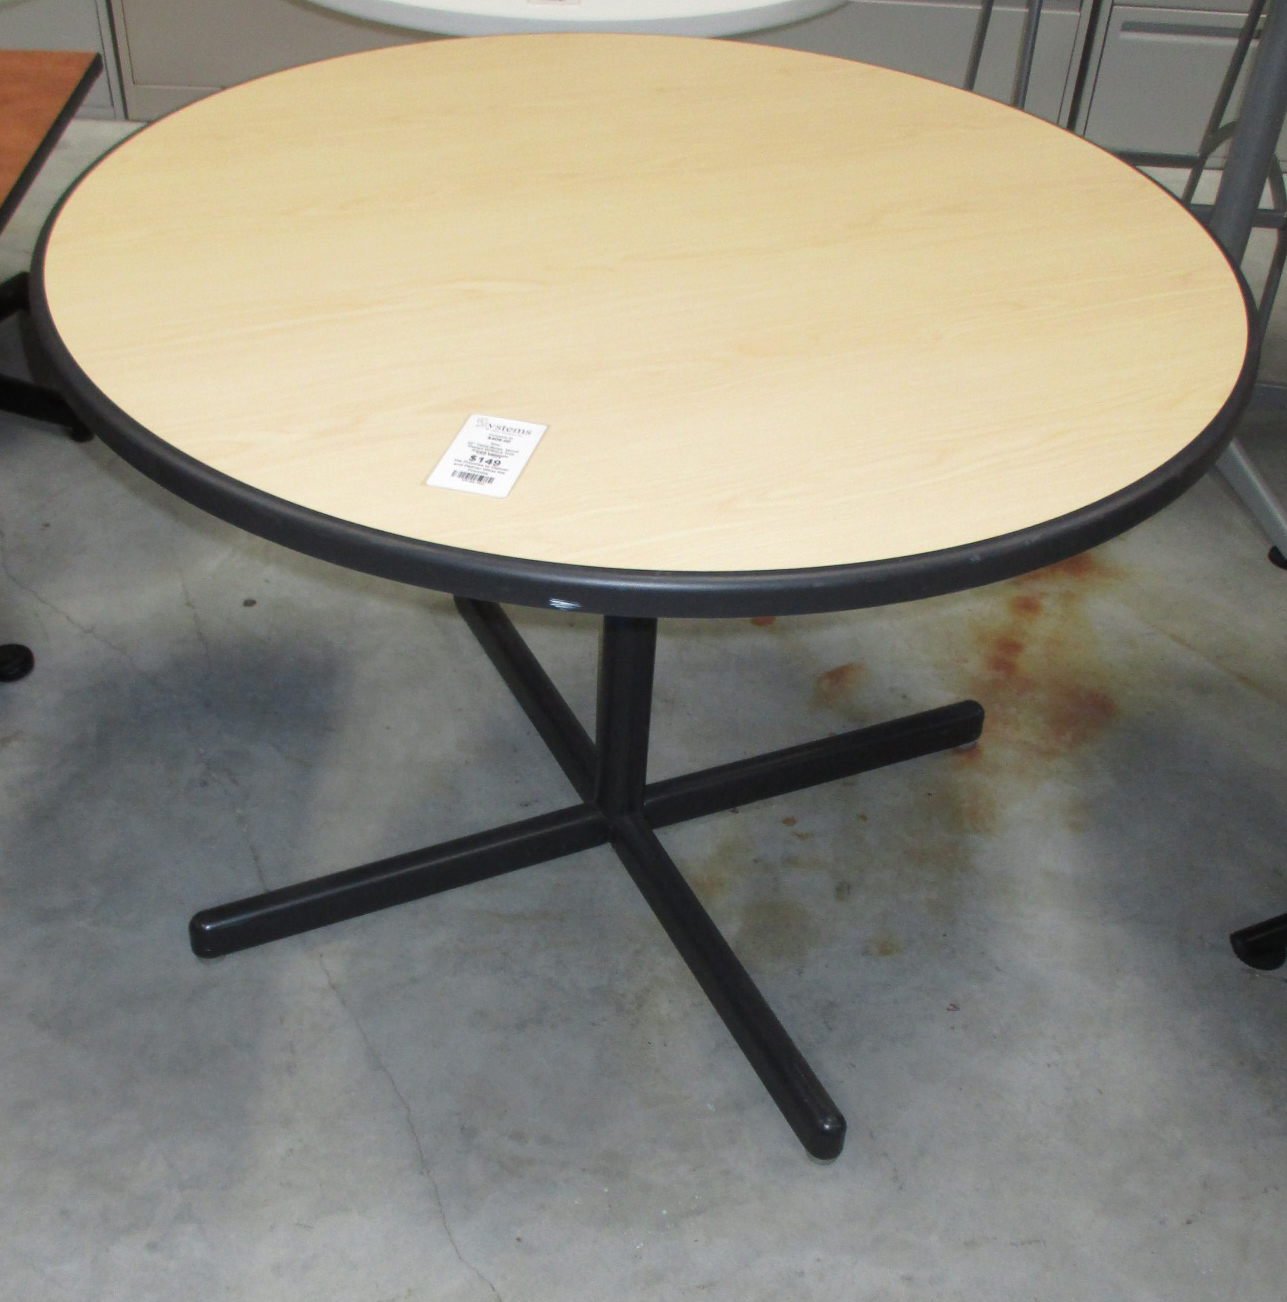 Tan Round Office Table Systems Office Furniture - Black round office table